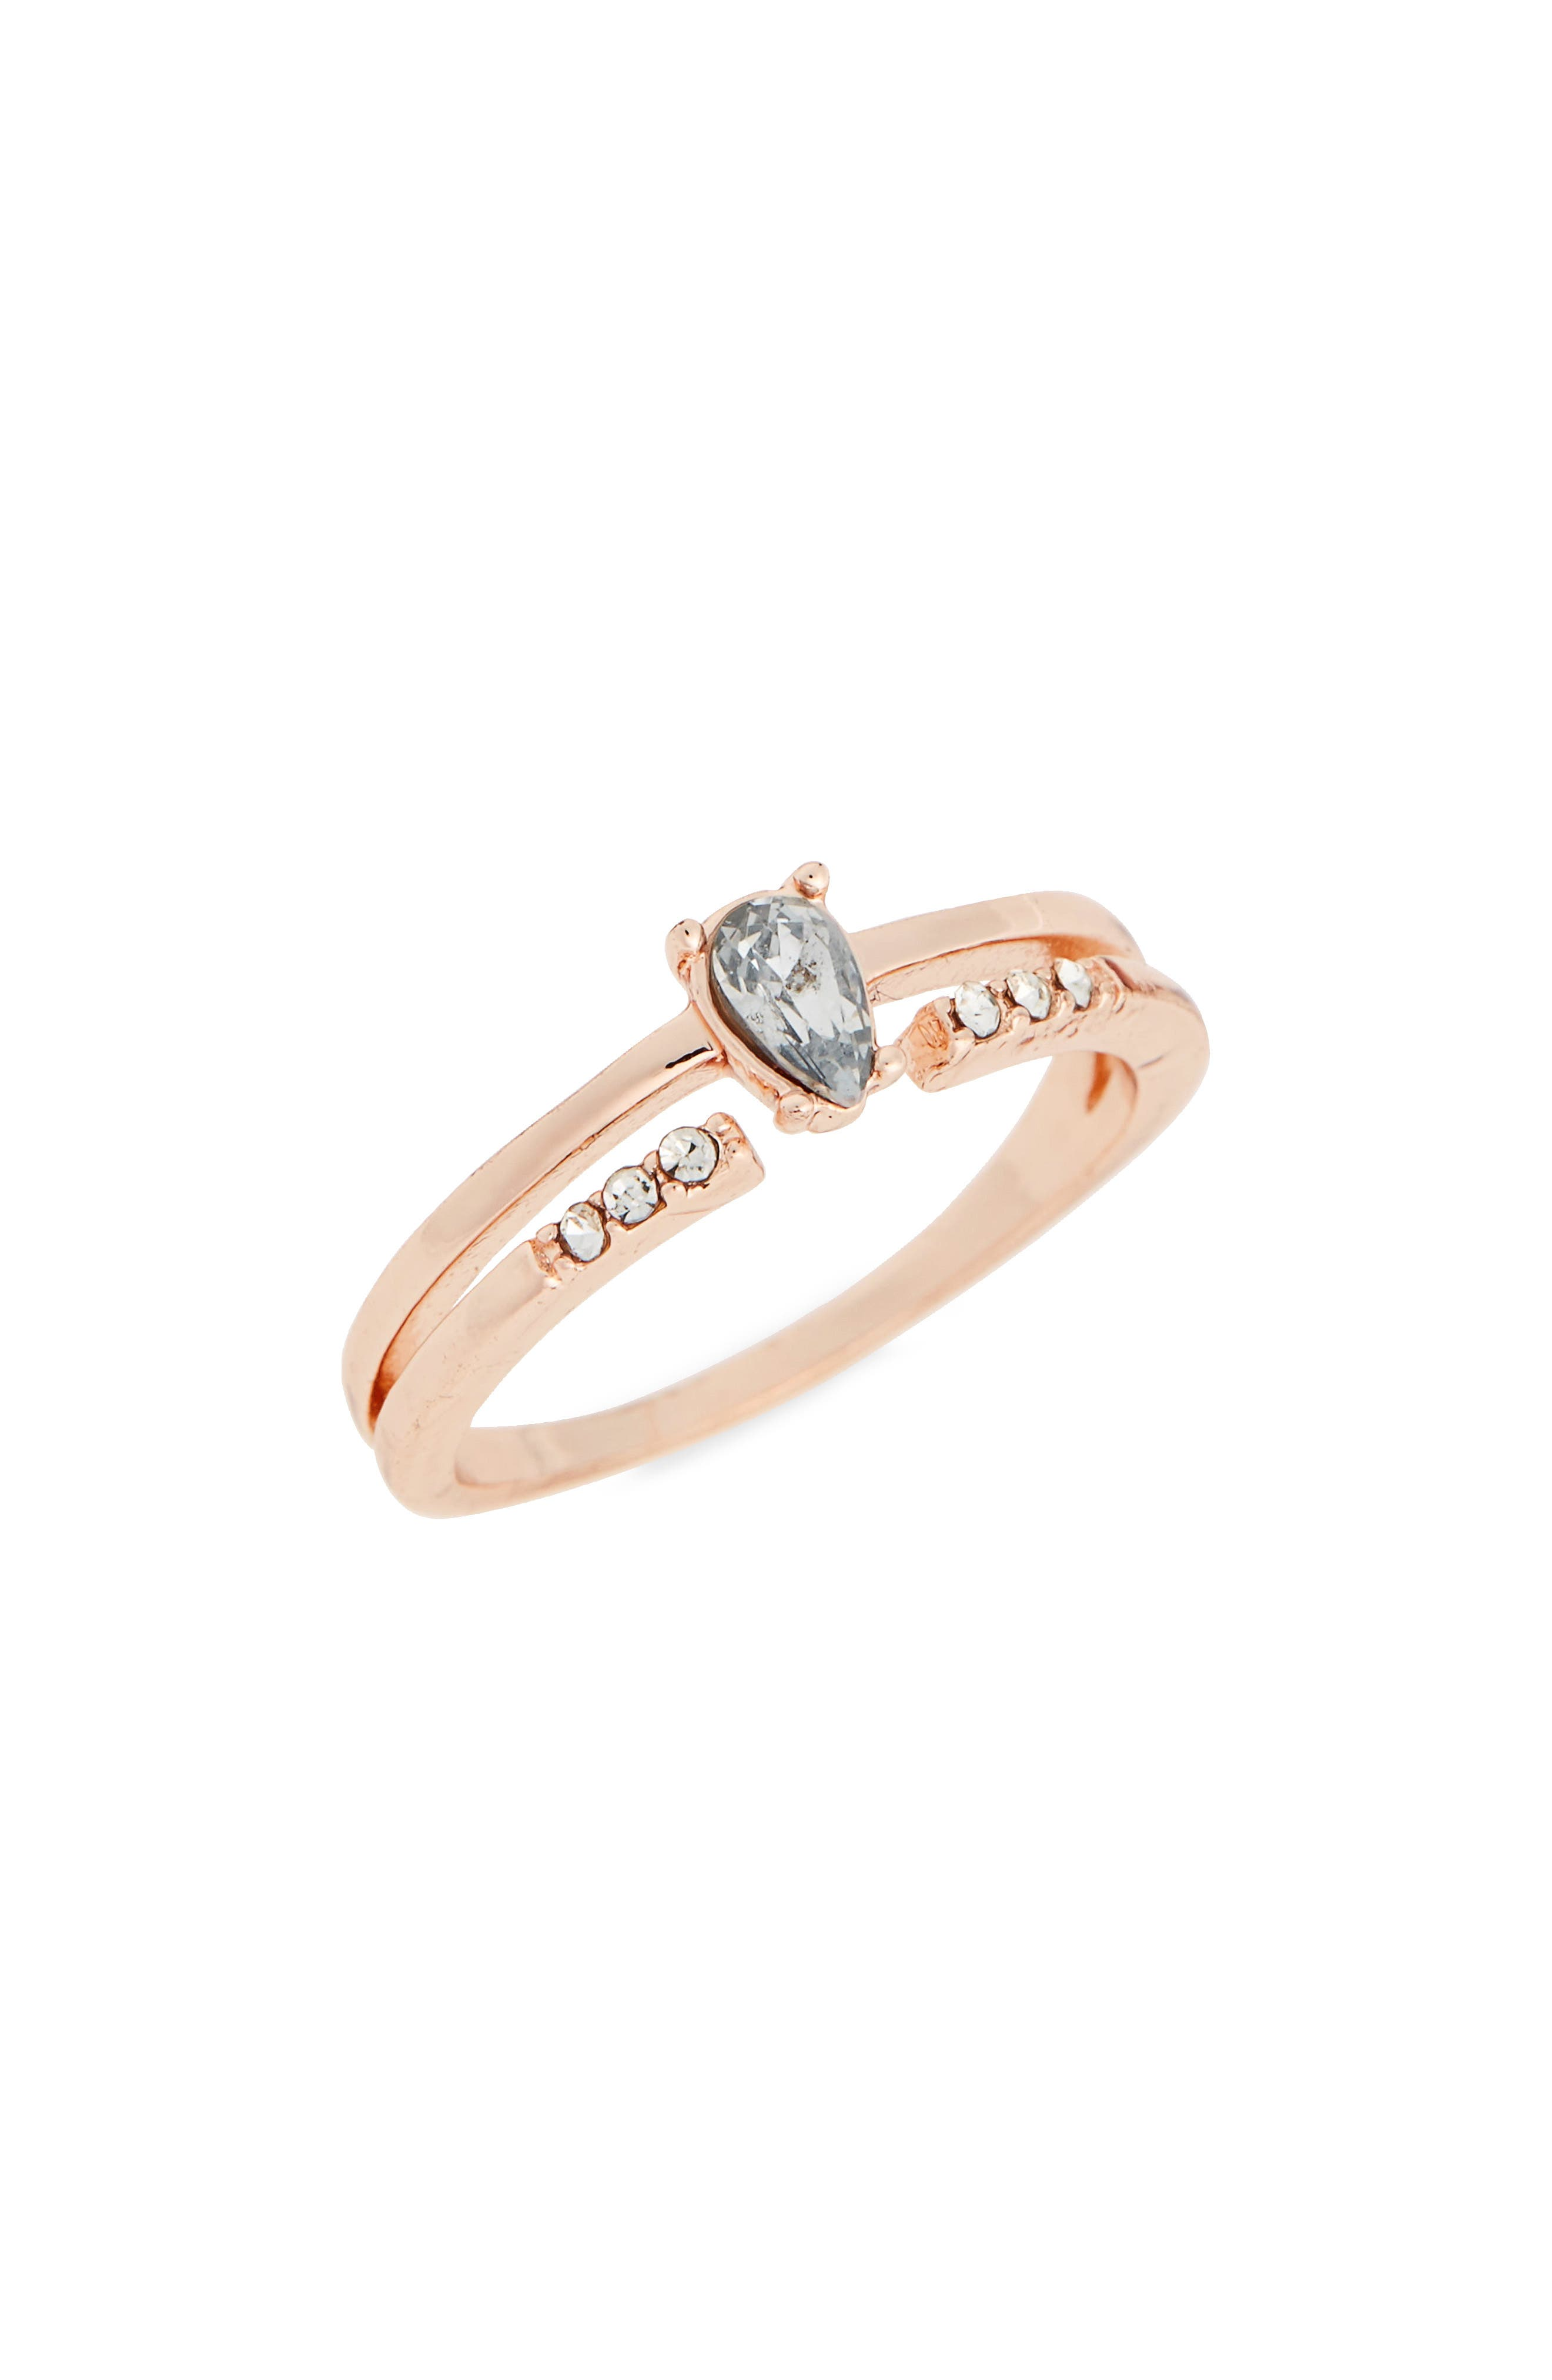 Fine Double Band Stone Ring,                             Main thumbnail 1, color,